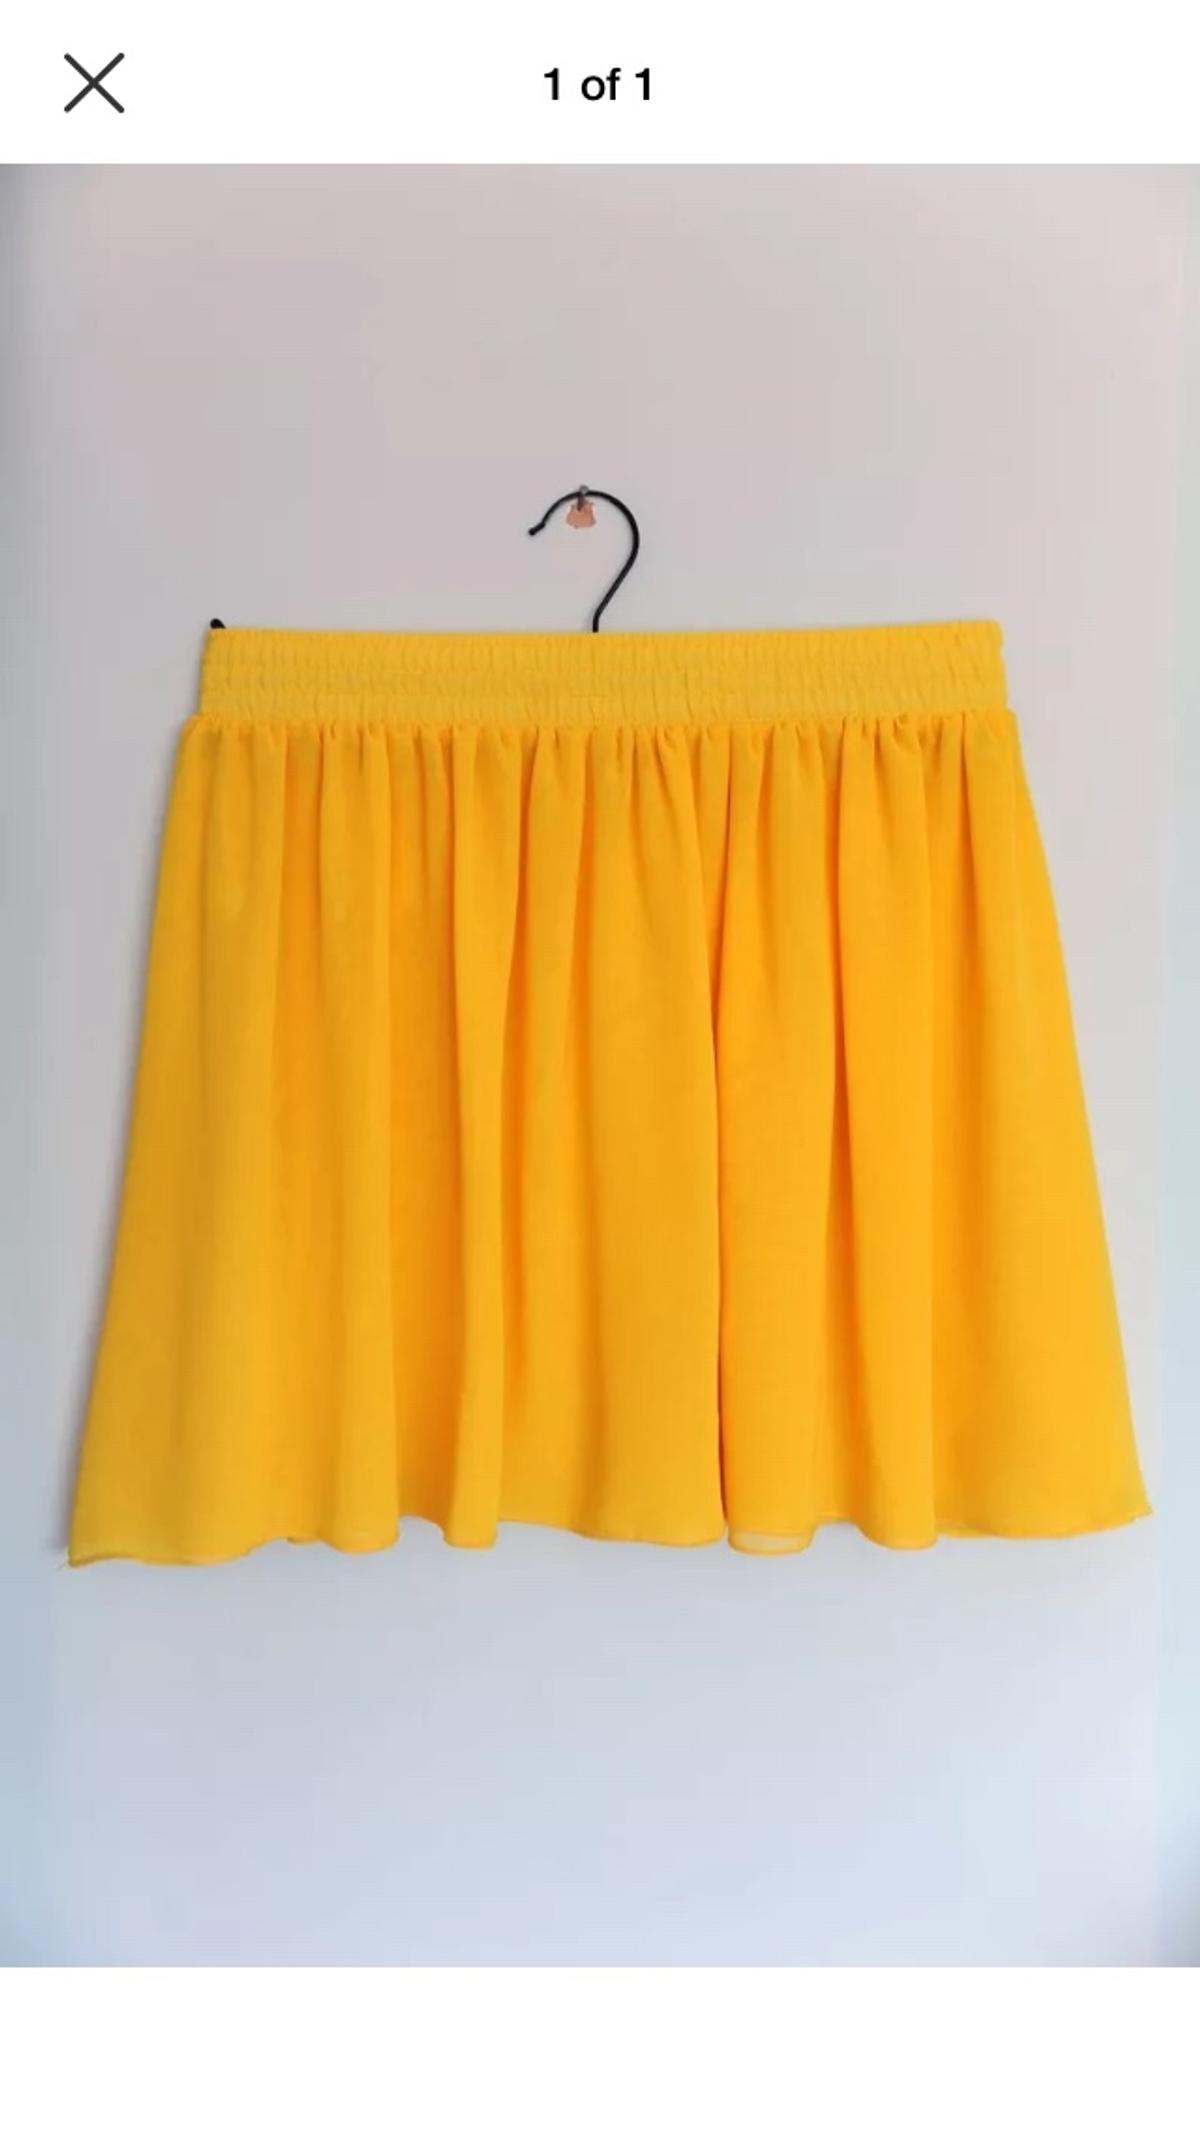 4fc37e4a3 American Apparel Yellow Skirt - XS/S in PL1 Plymouth for £15.00 for ...